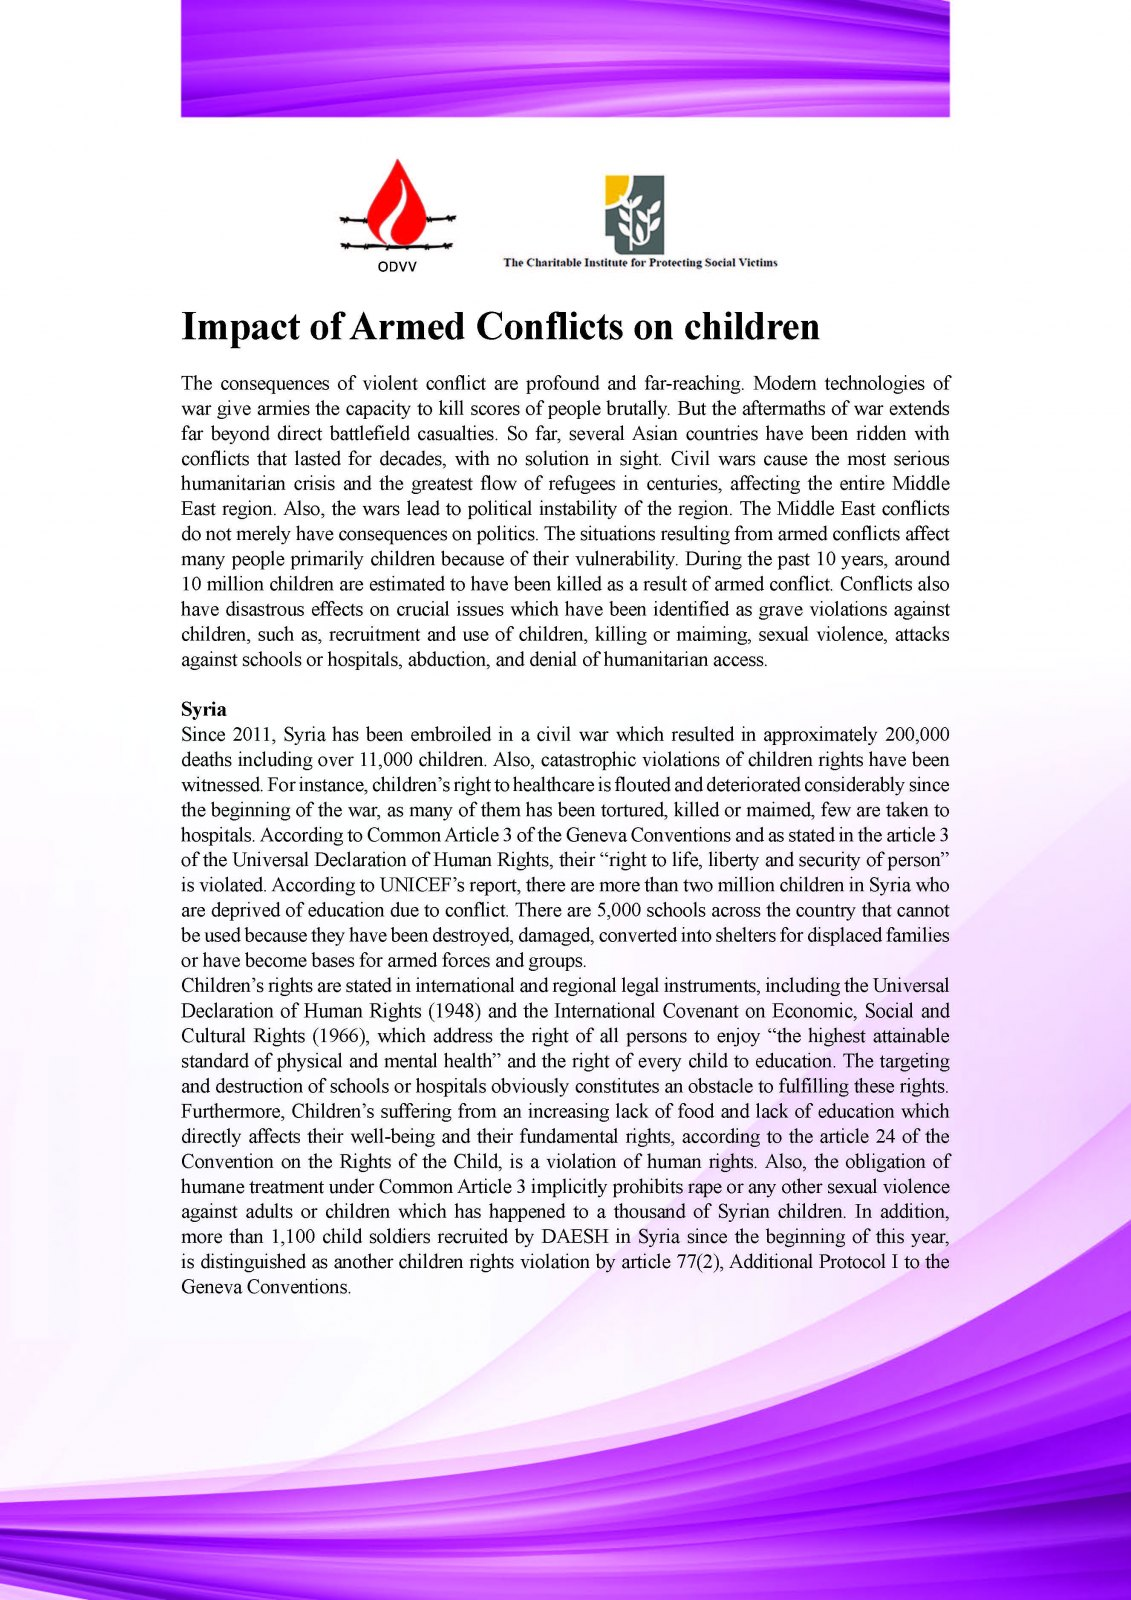 Armed Conflict Is the Most Serious Consequence of the Conflict in Sri Lanka